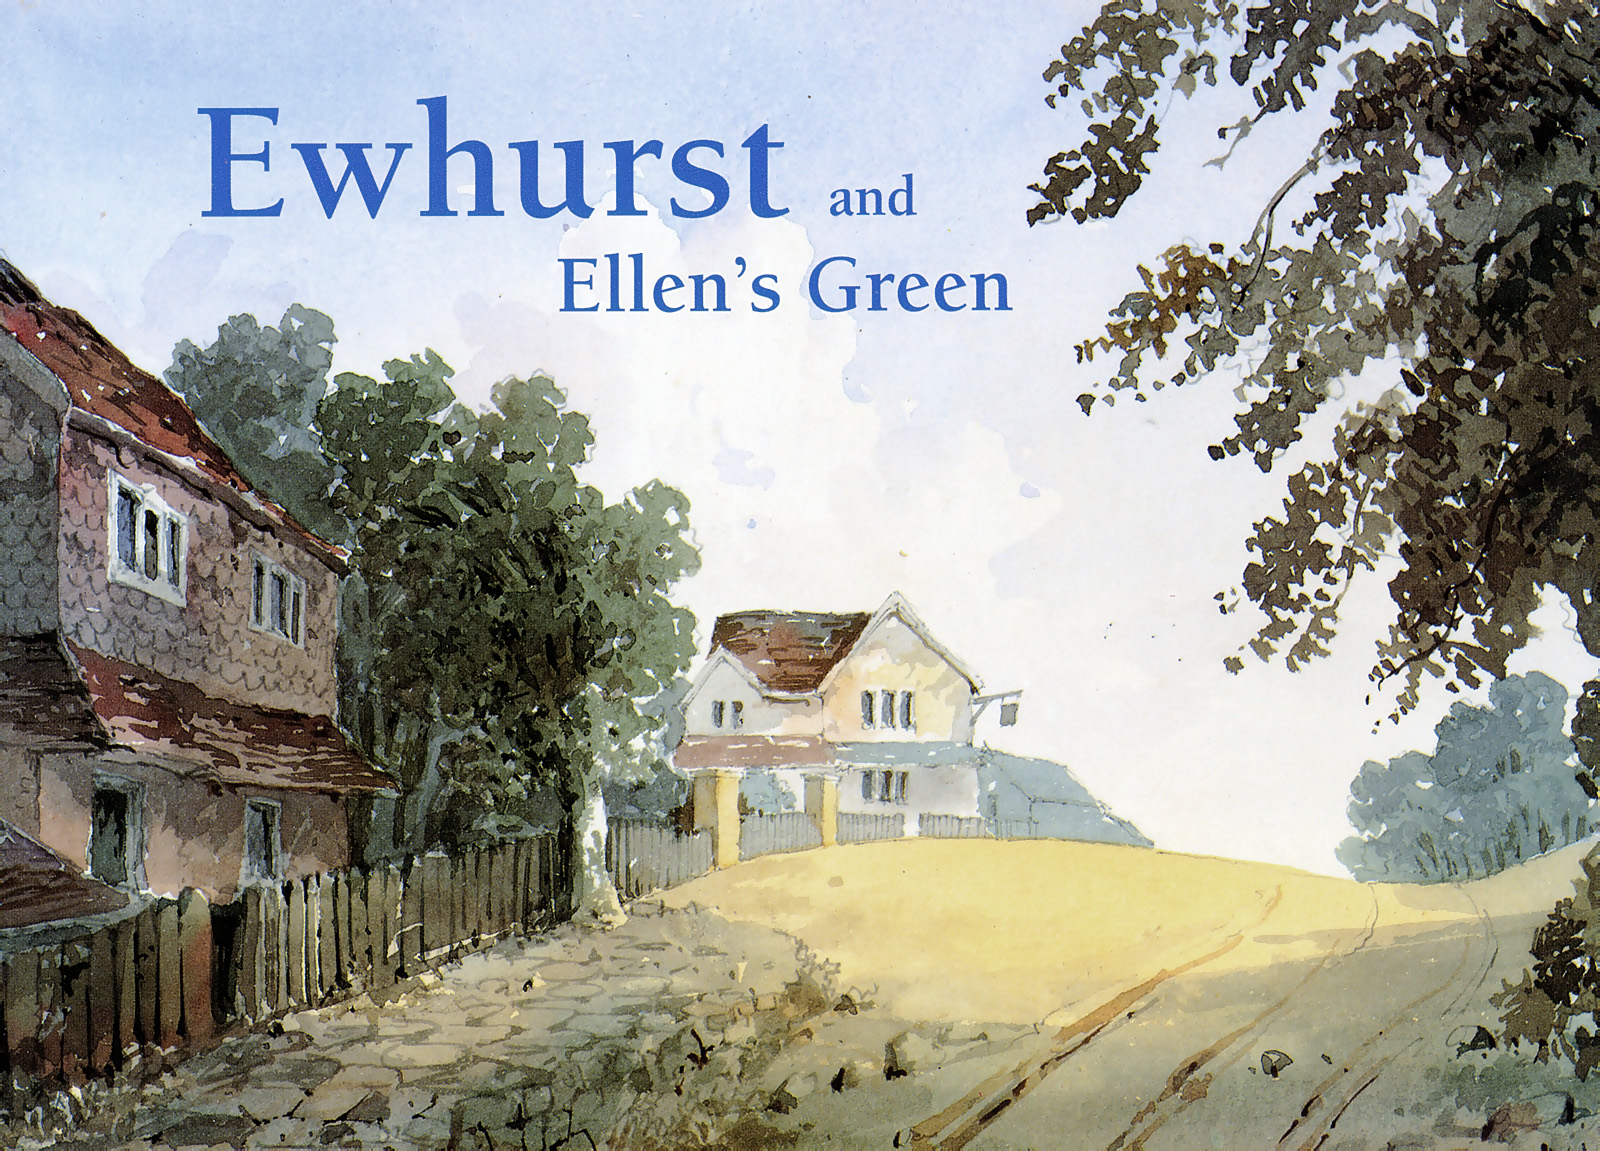 Ewhurst and Ellens Green